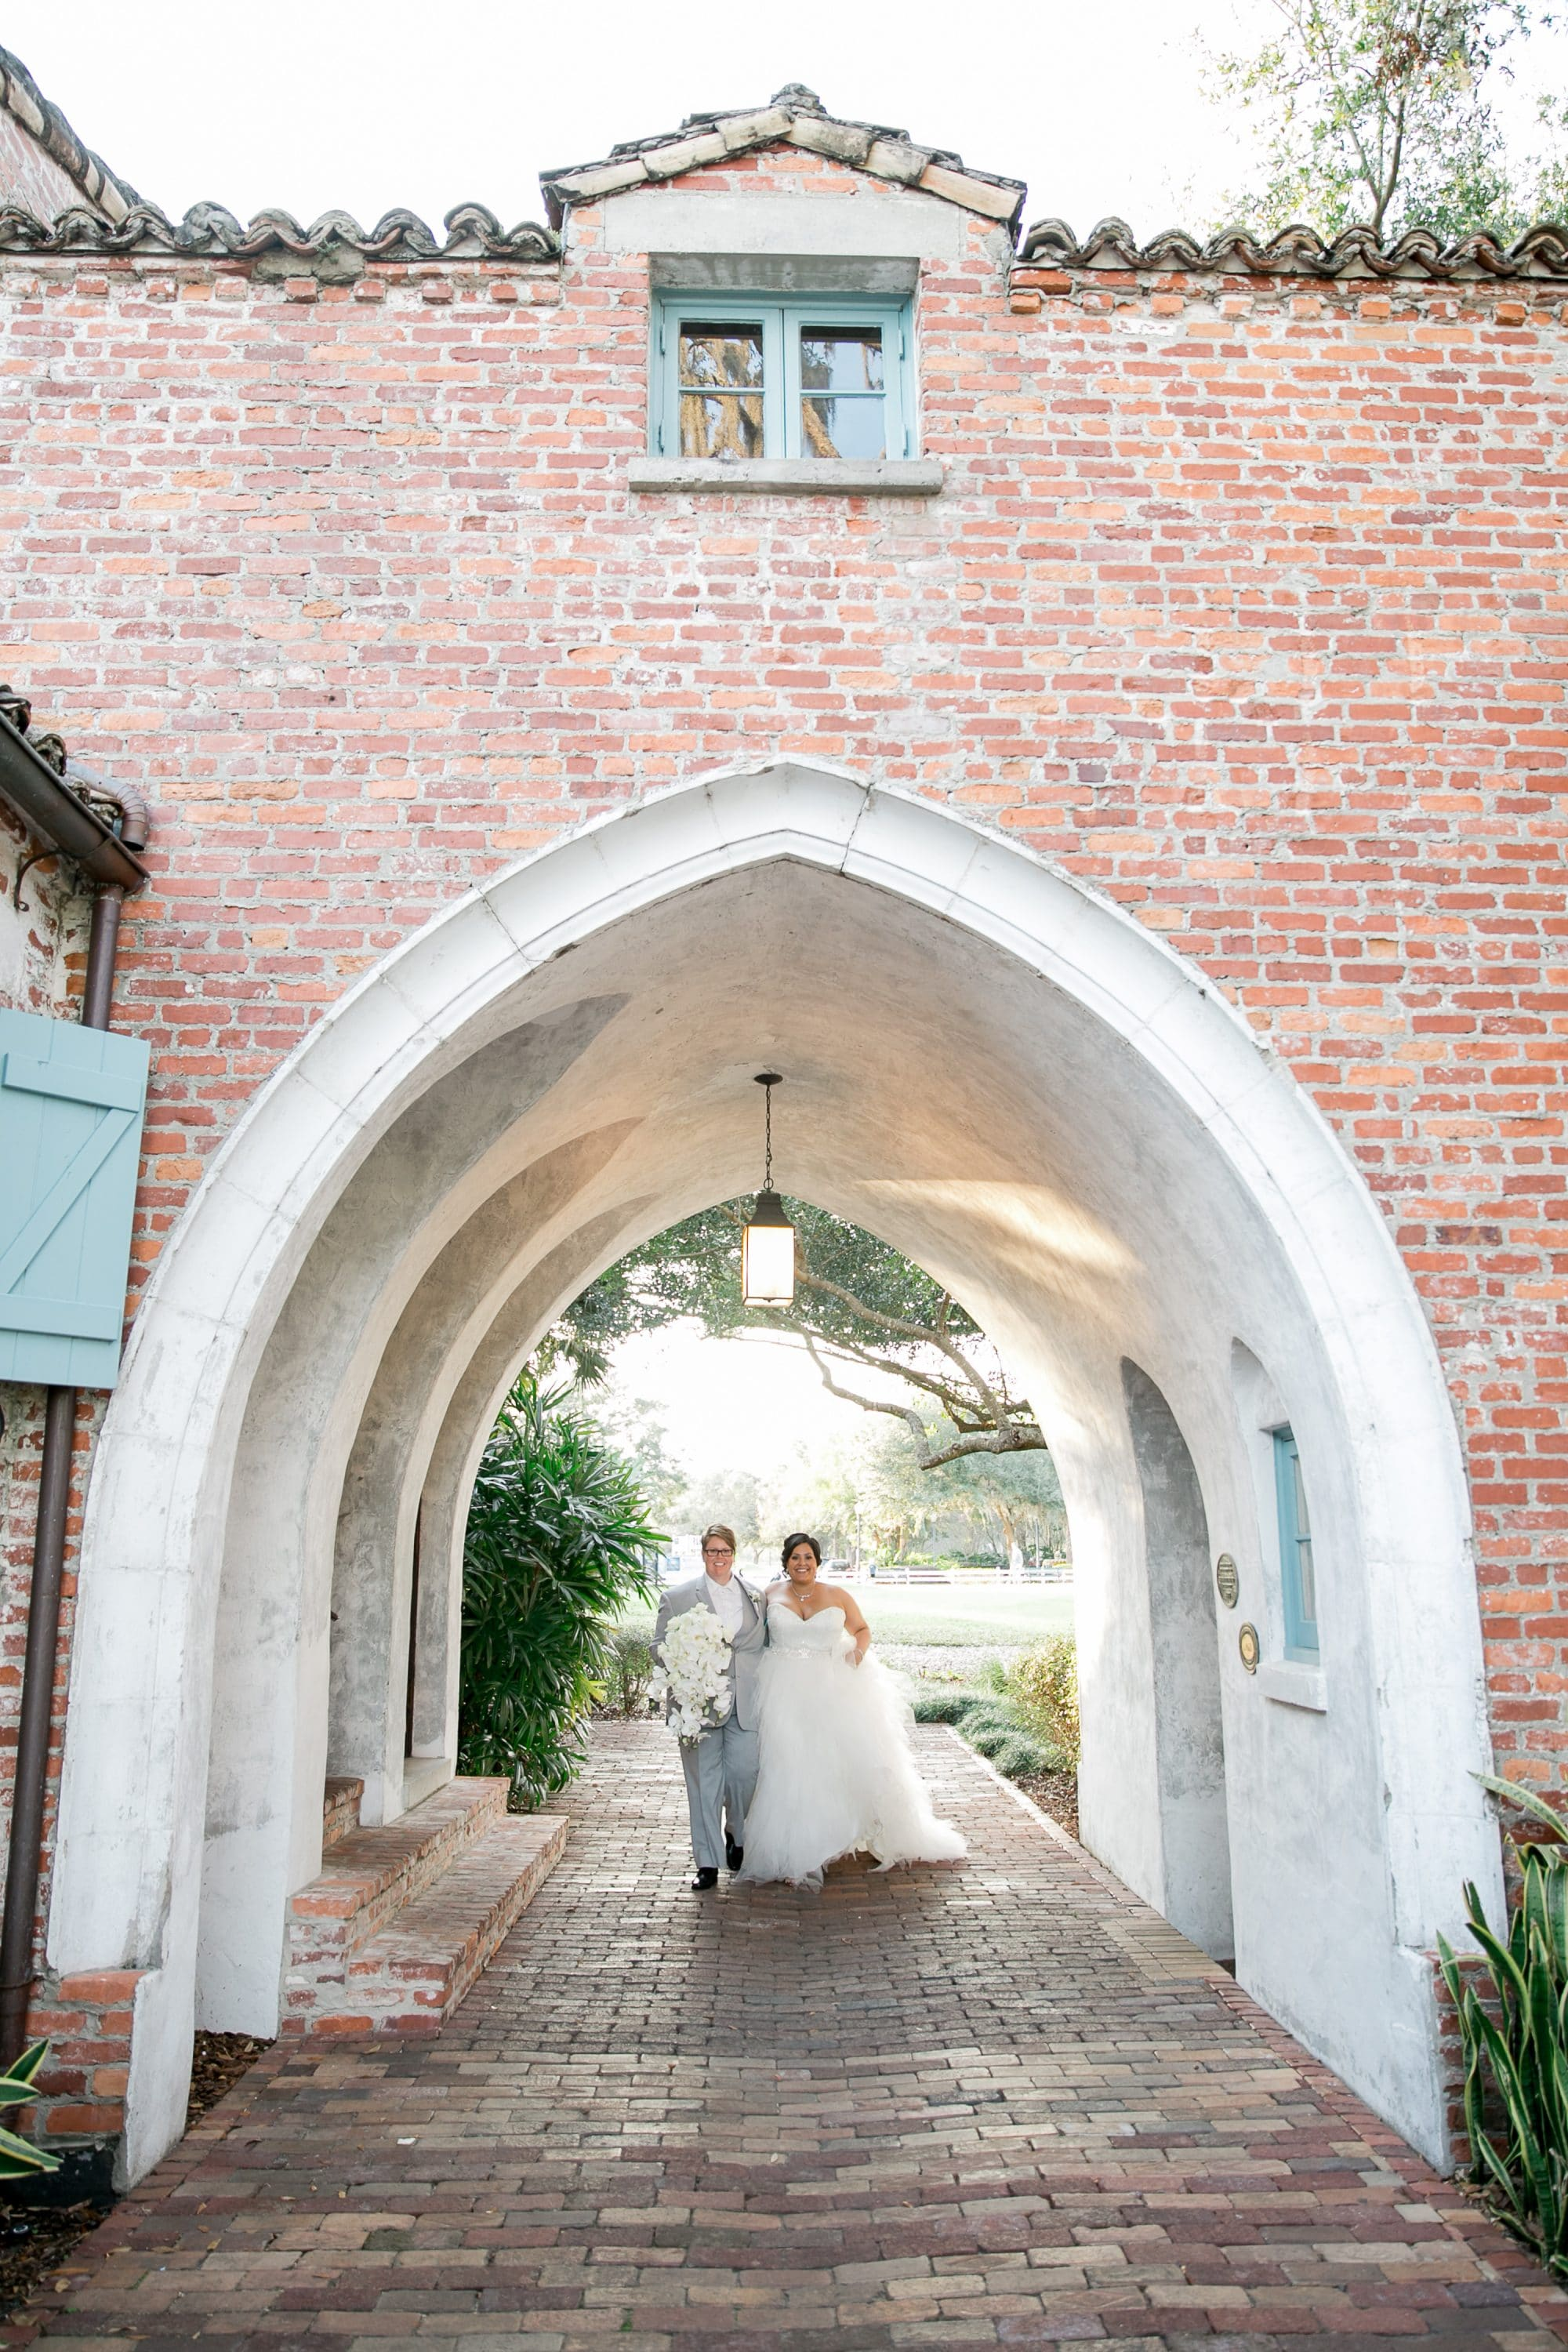 Casa Feliz - brides walking through arched hallway outdoors